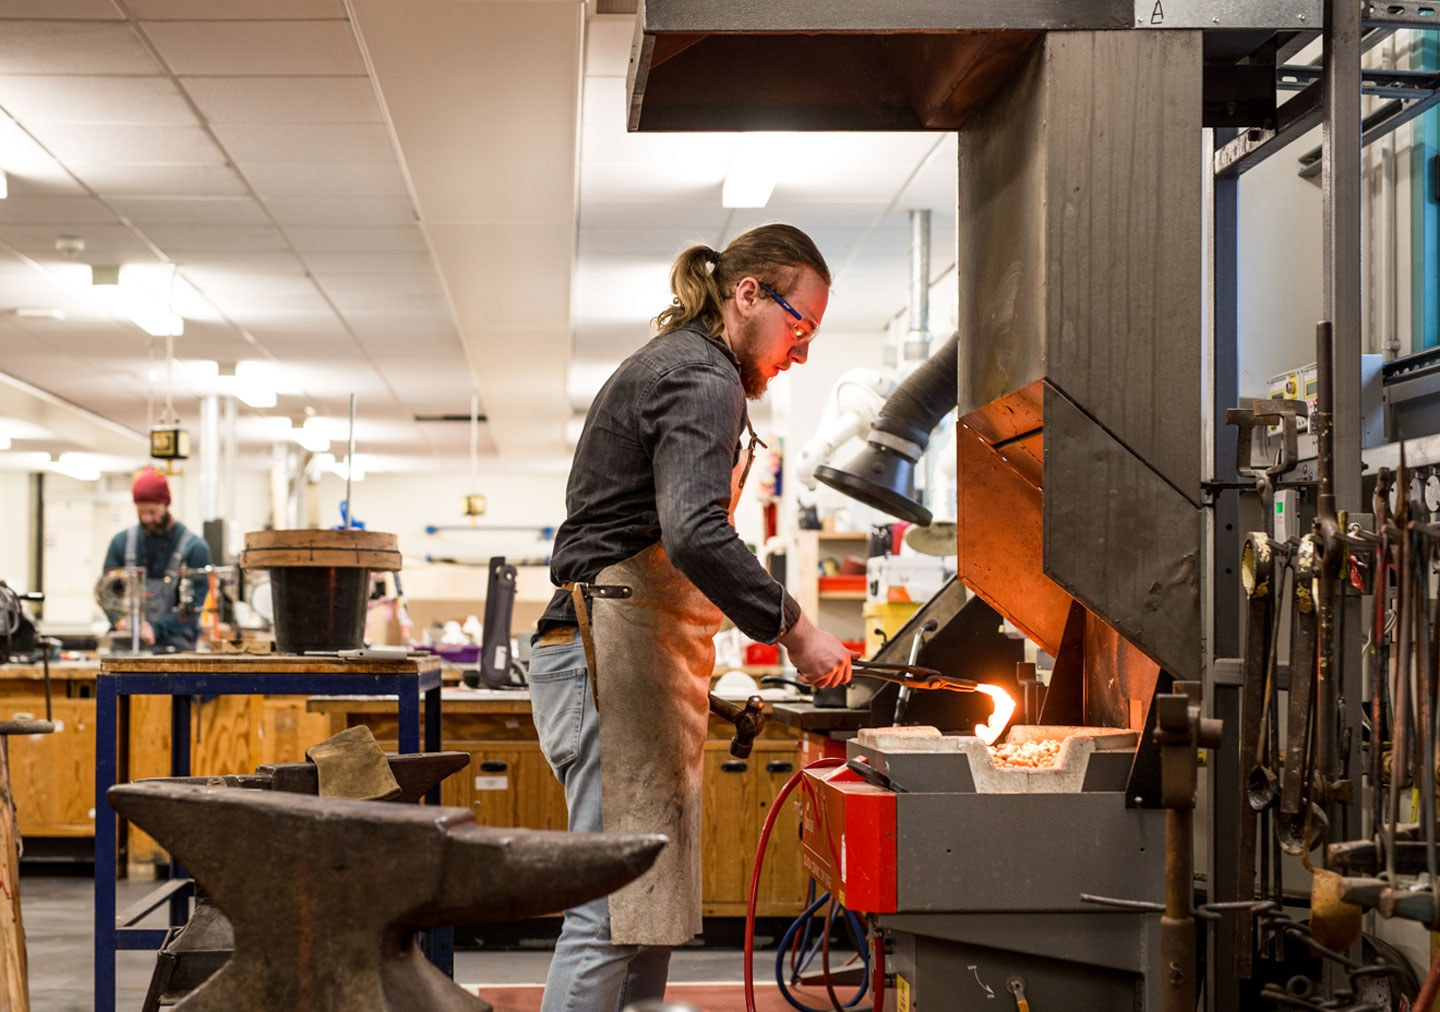 3 D Design and Creative practice student blacksmithing